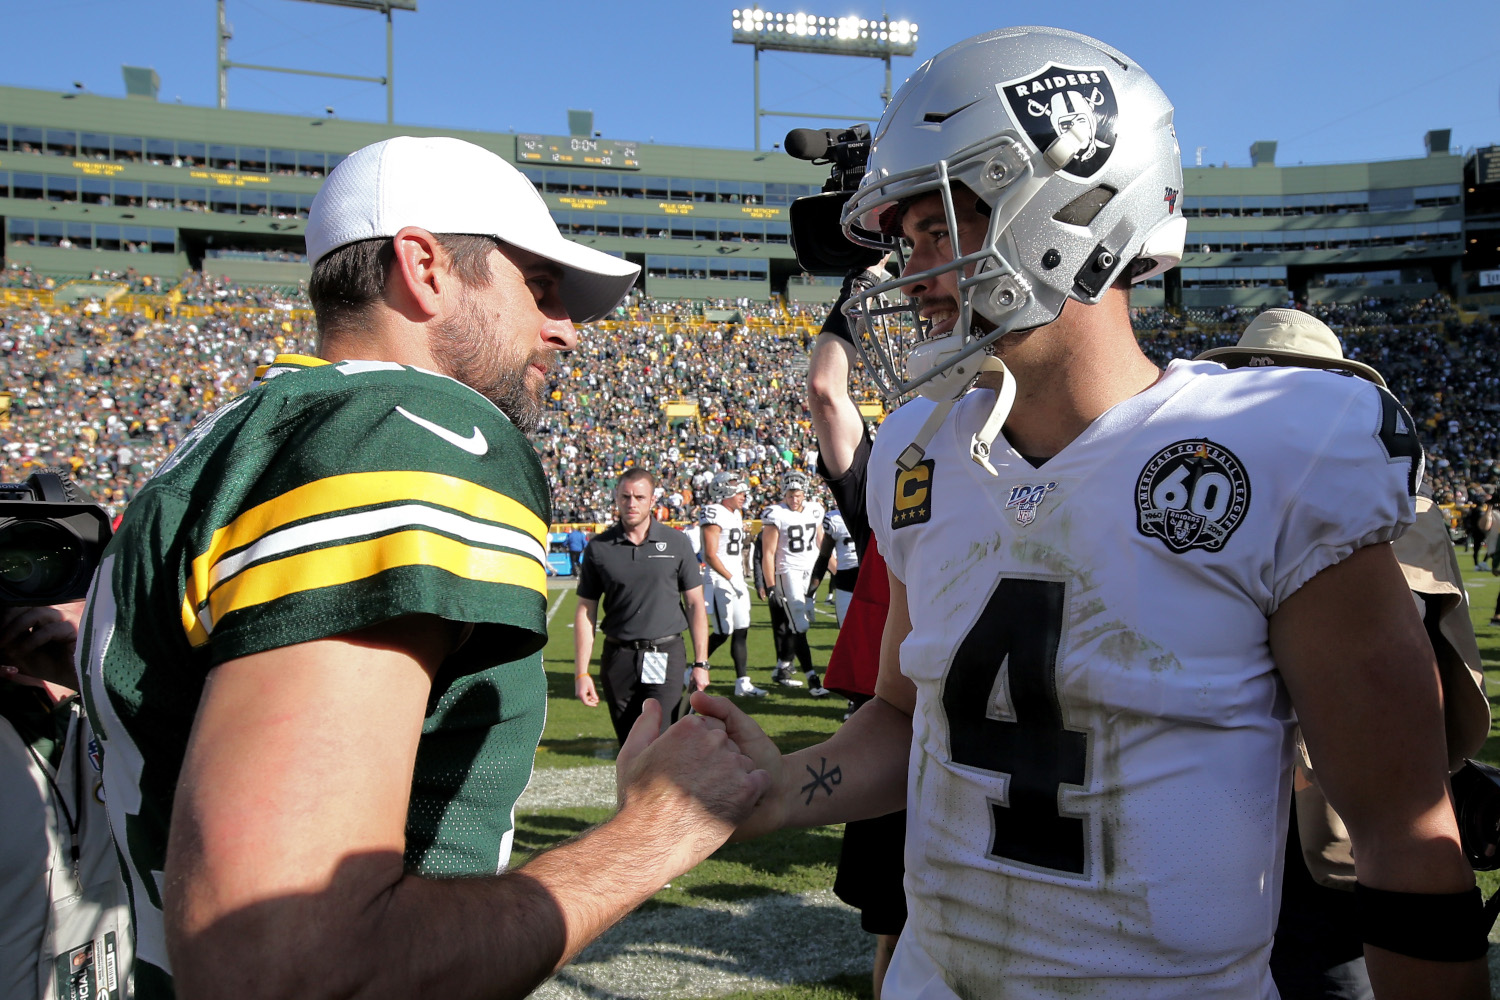 Aaron Rodgers would be the biggest sports star ever in Las Vegas